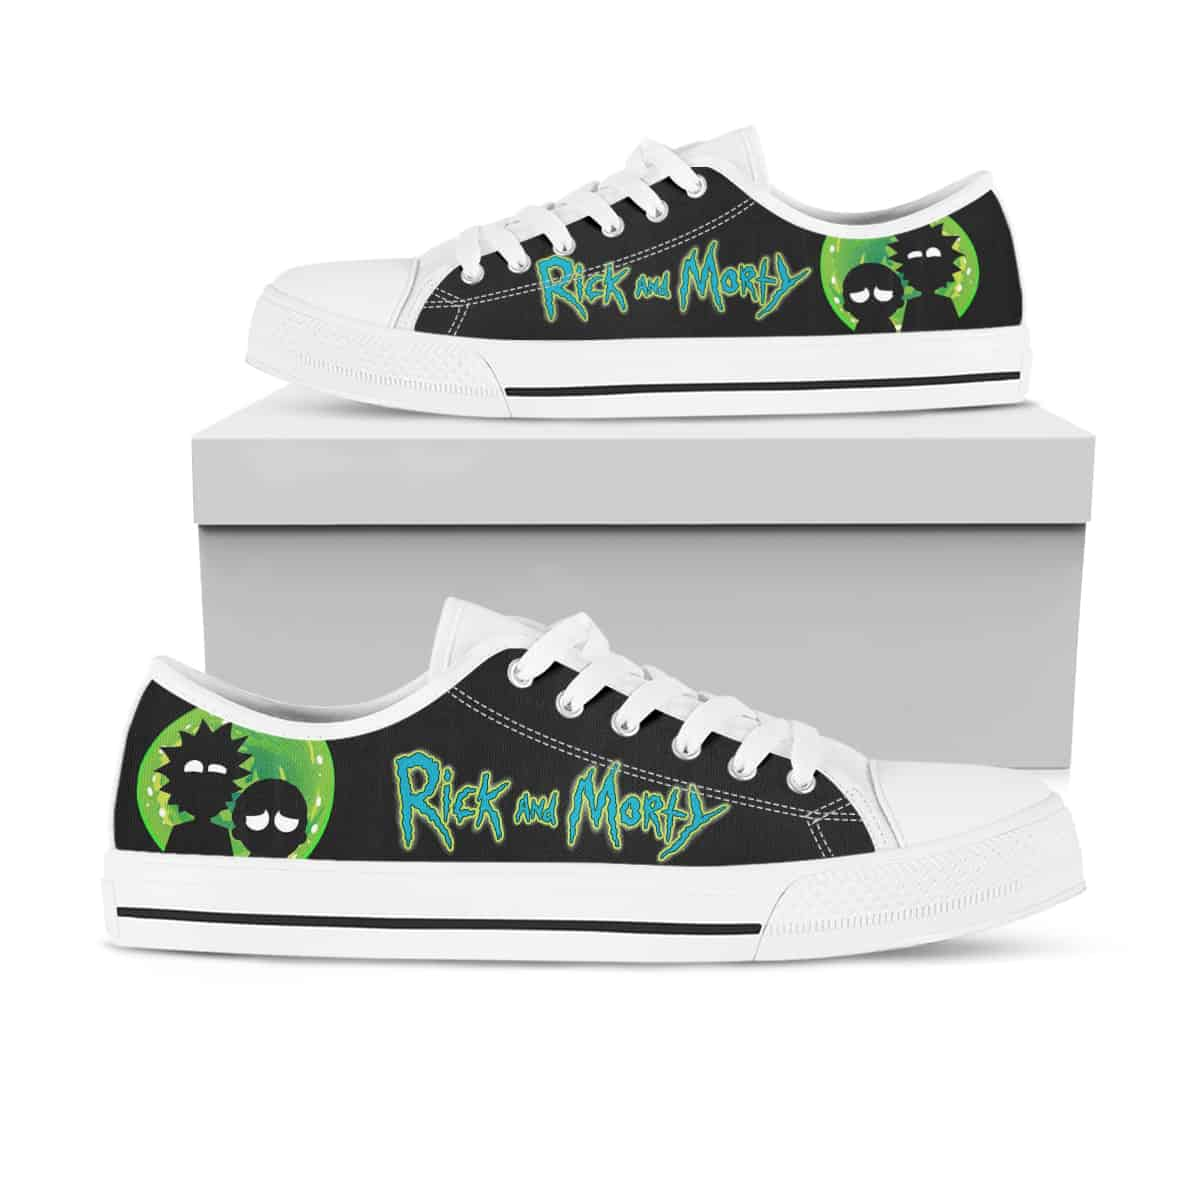 Rick And Morty Ha28 Low Top Shoes